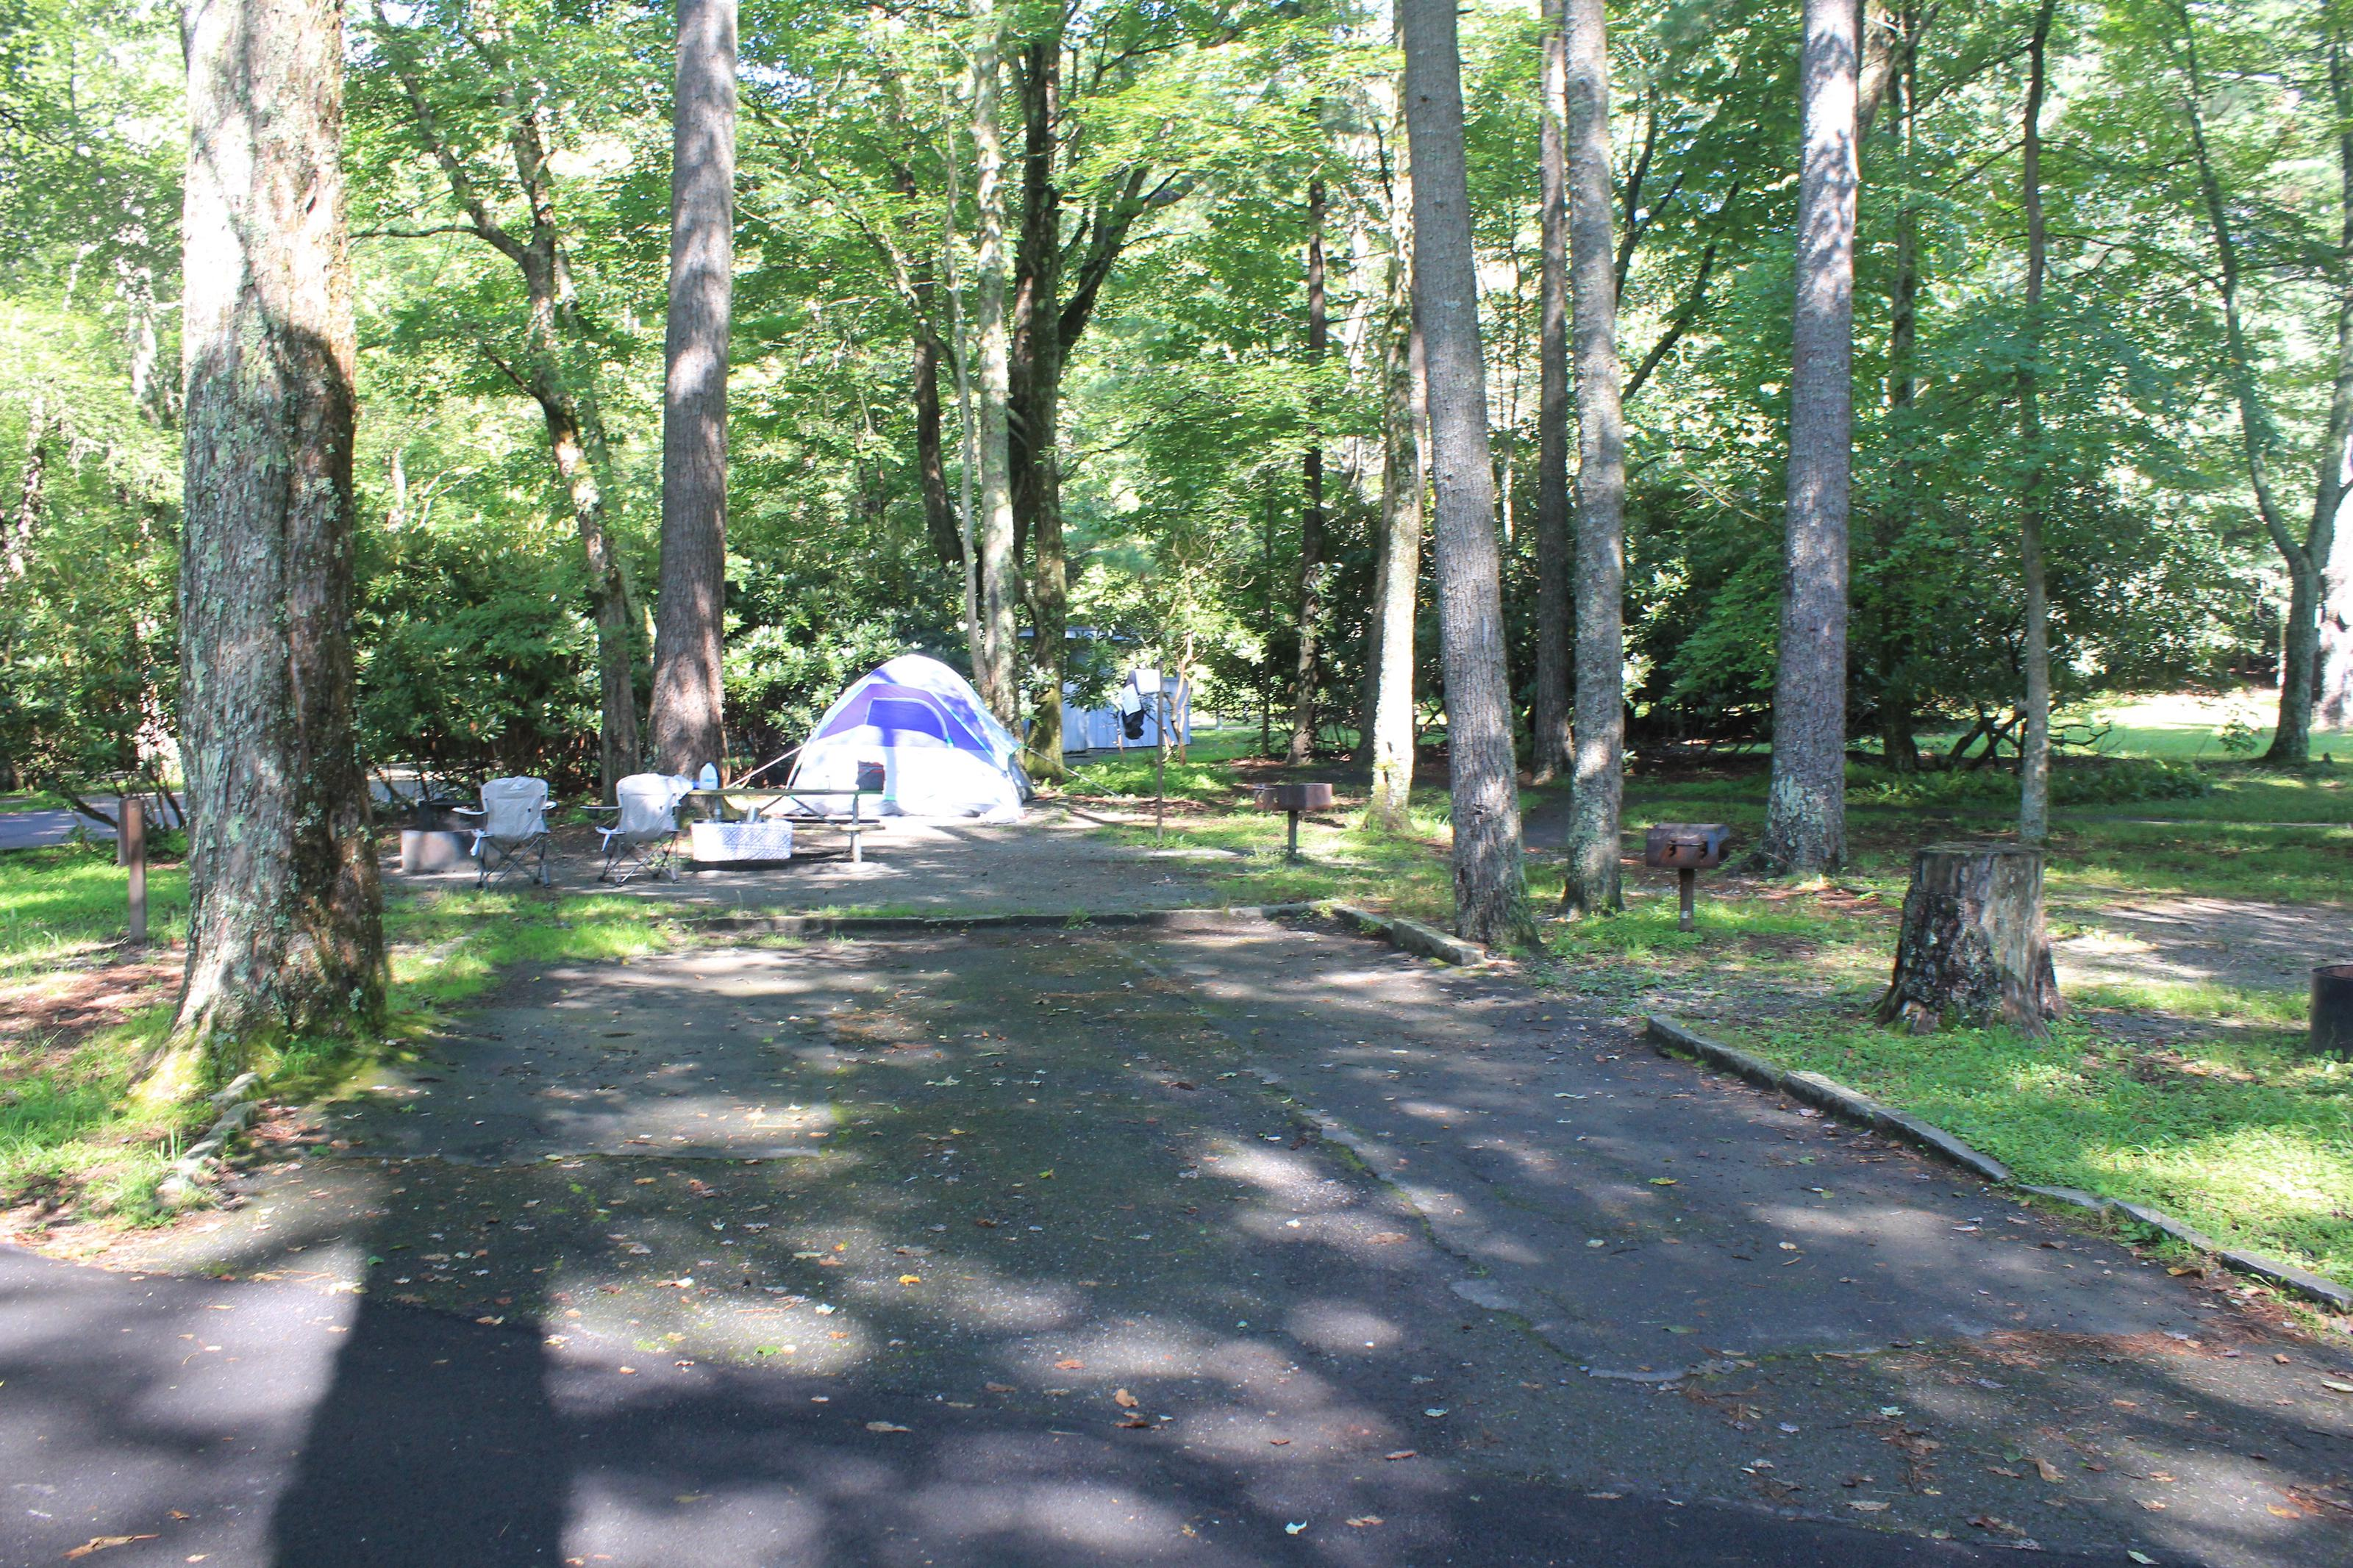 A Loop Site 20 - Tent Nonelectric (Handicap Accessible)